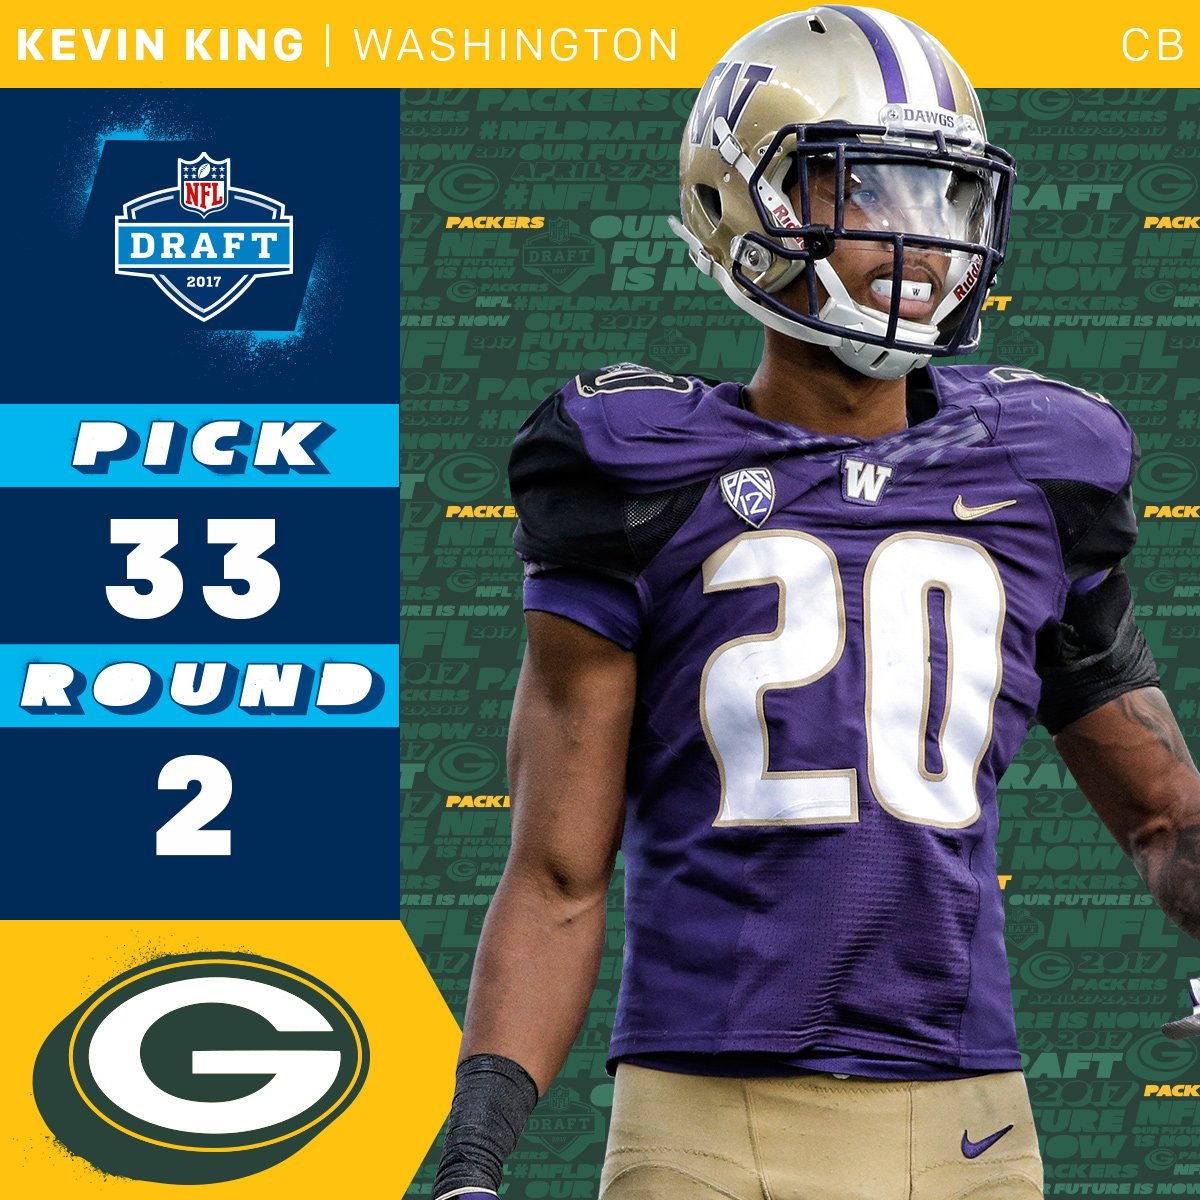 33 - Kevin King